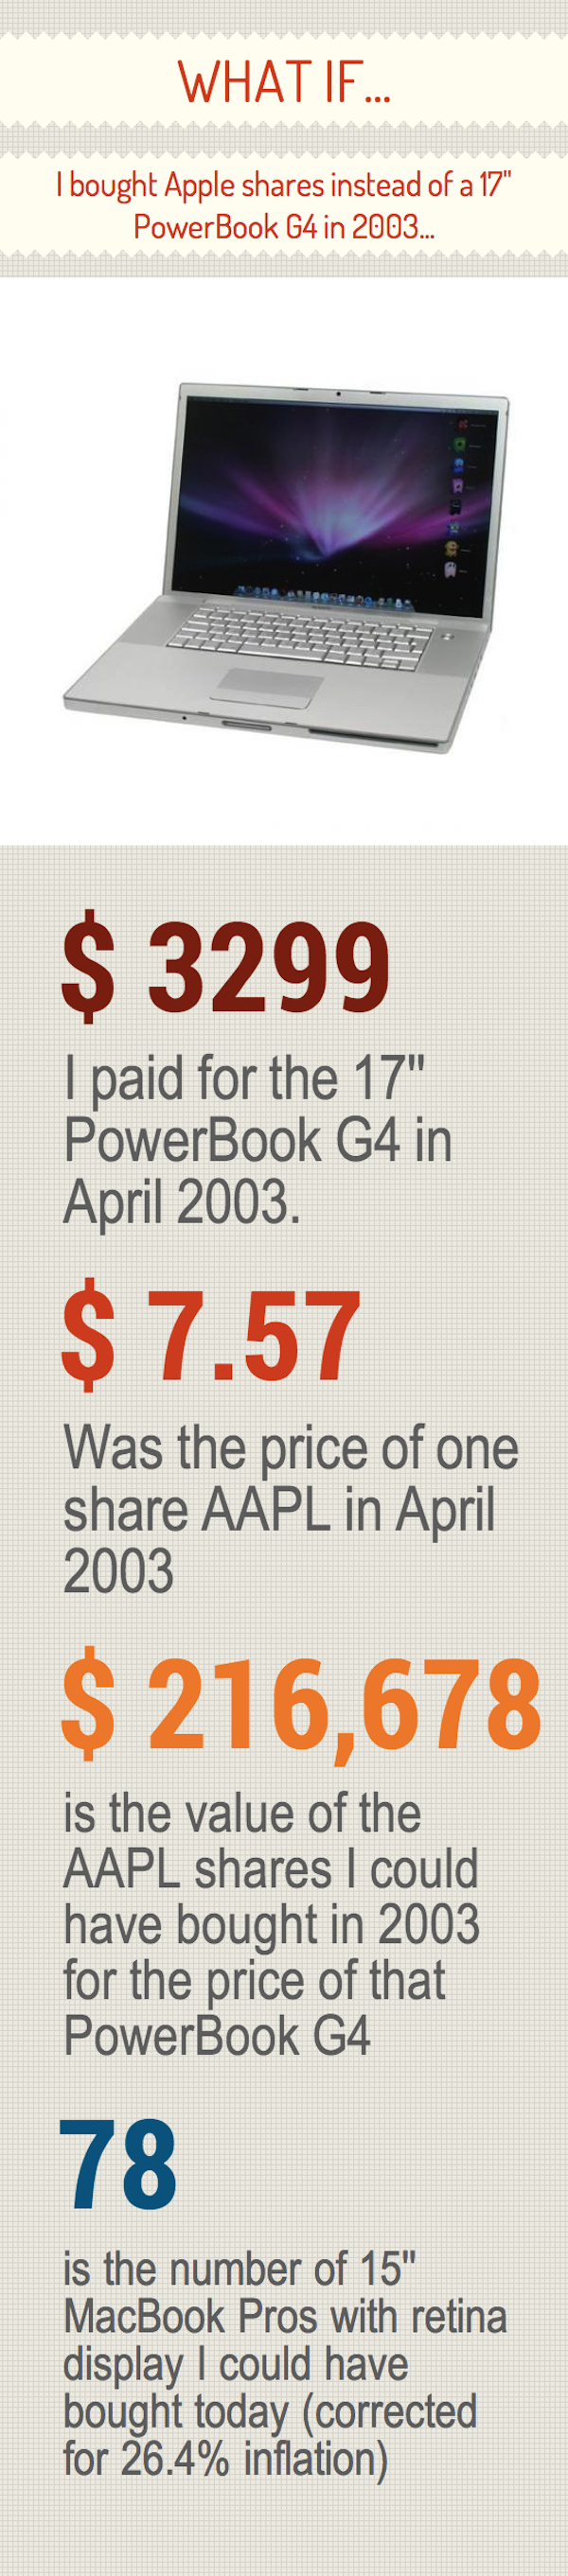 What-If-You-Bought-Stock-In-Apple